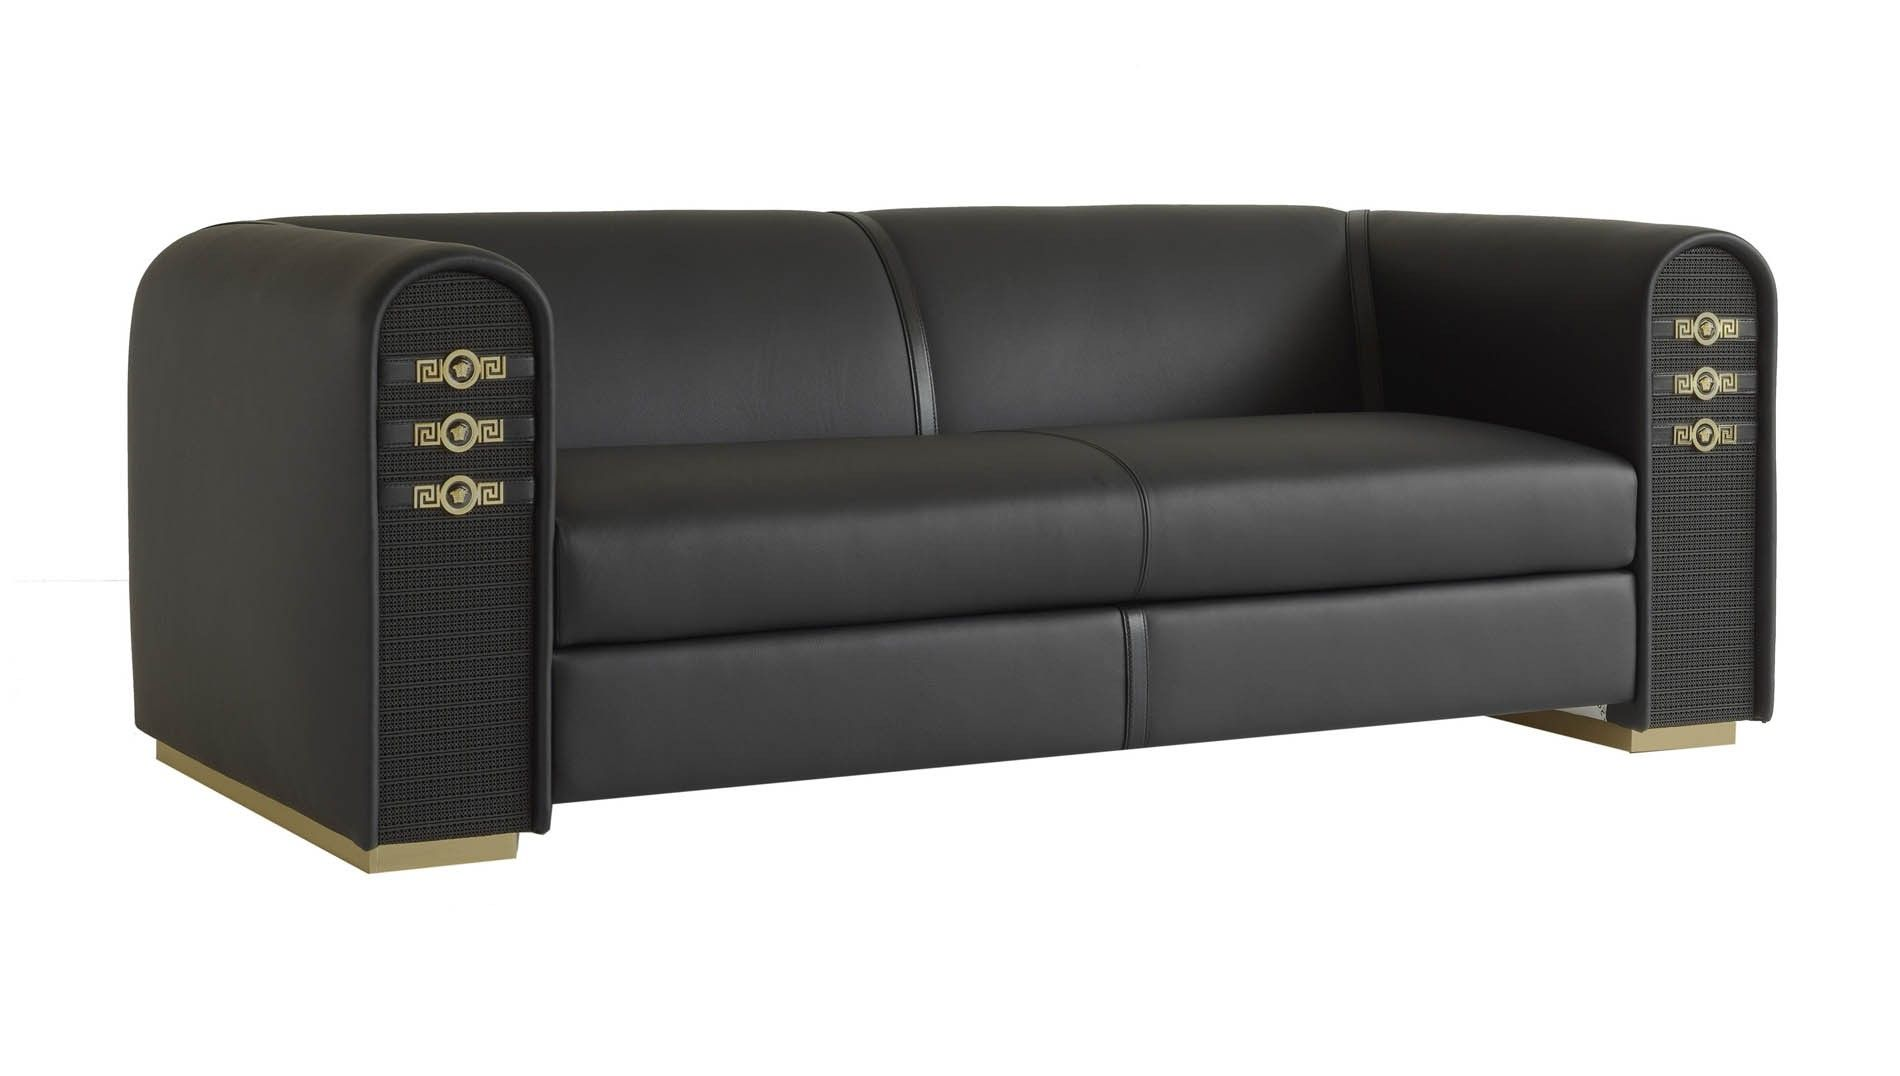 versace leather sofa logo versace home collection a son s Leather Sofa Factory Direct Tufted Leather Sofa Set